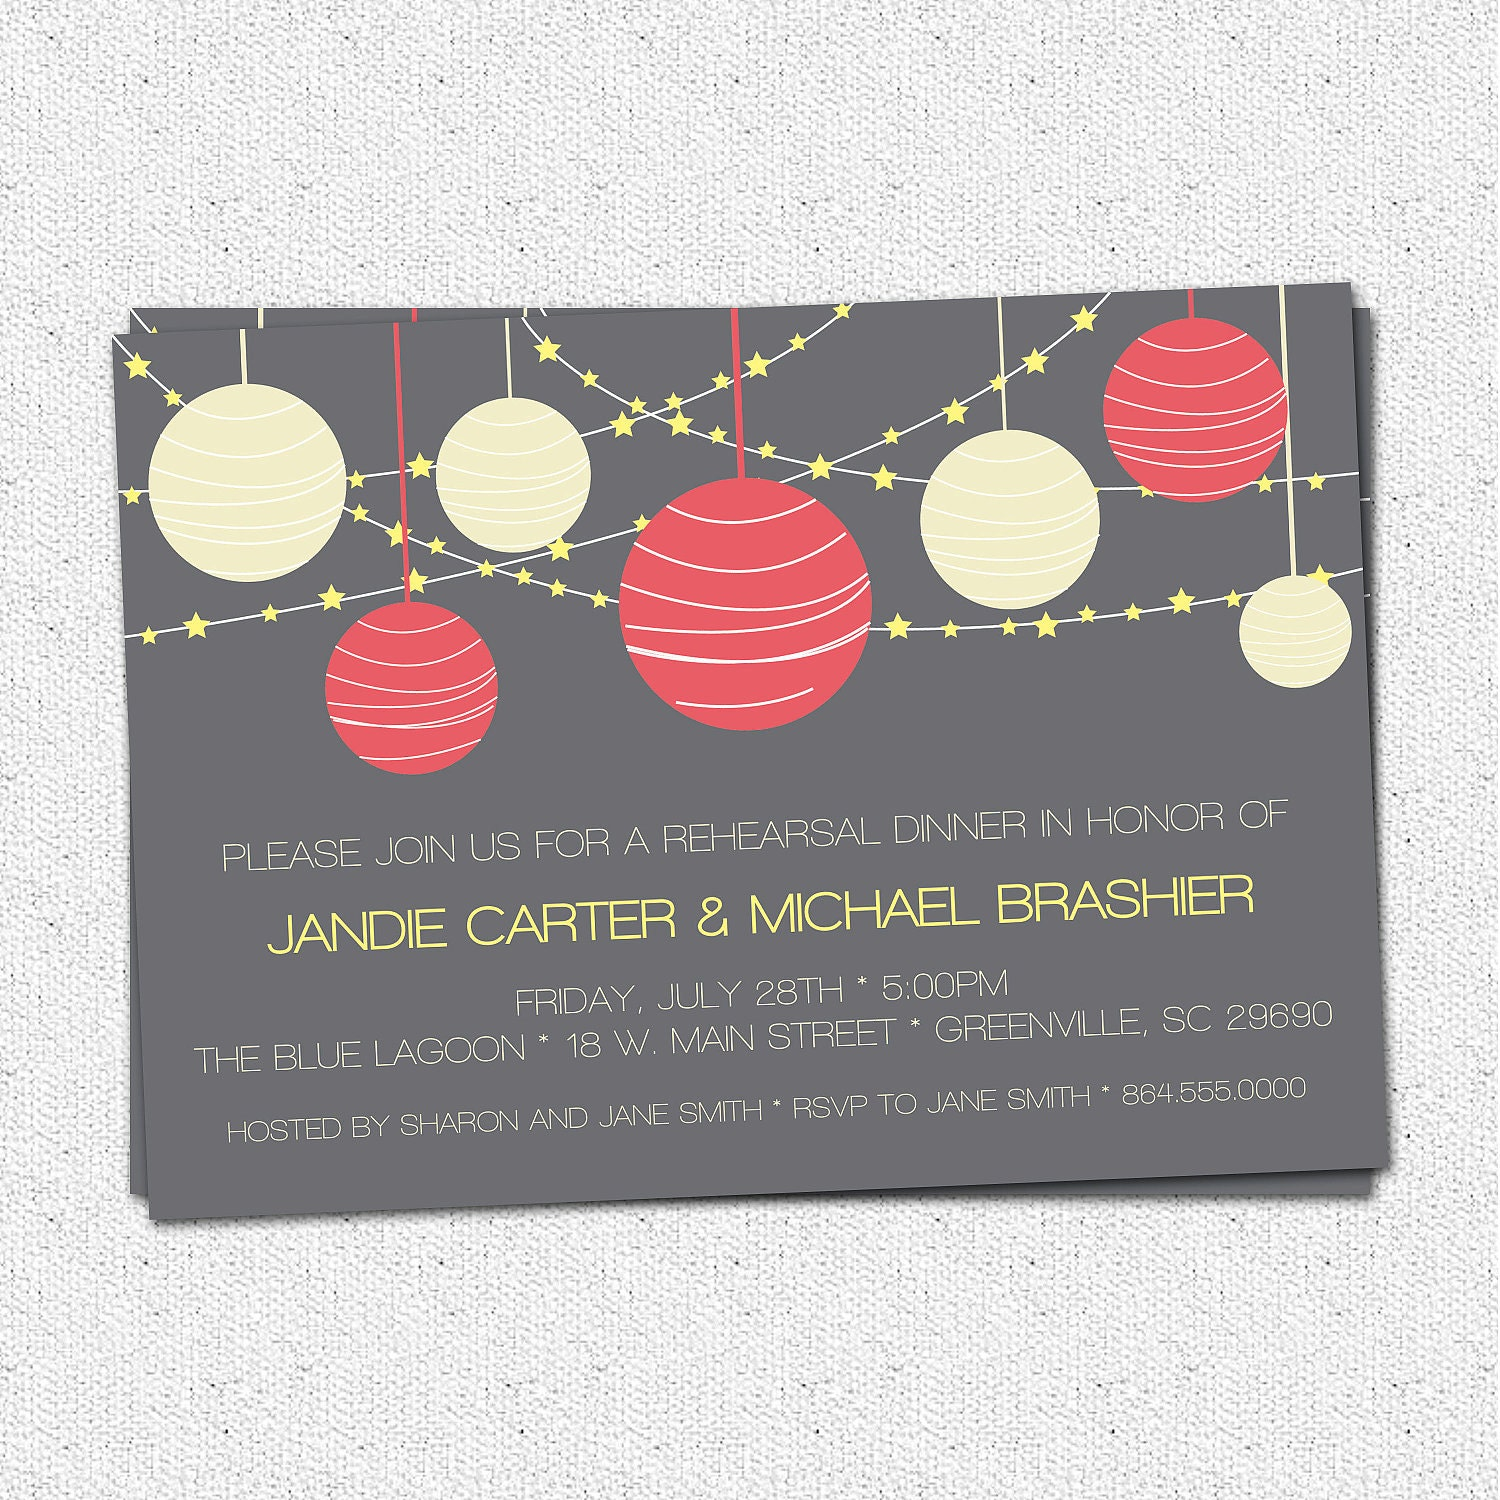 Printable Rehearsal Dinner Invitations Night Lanterns